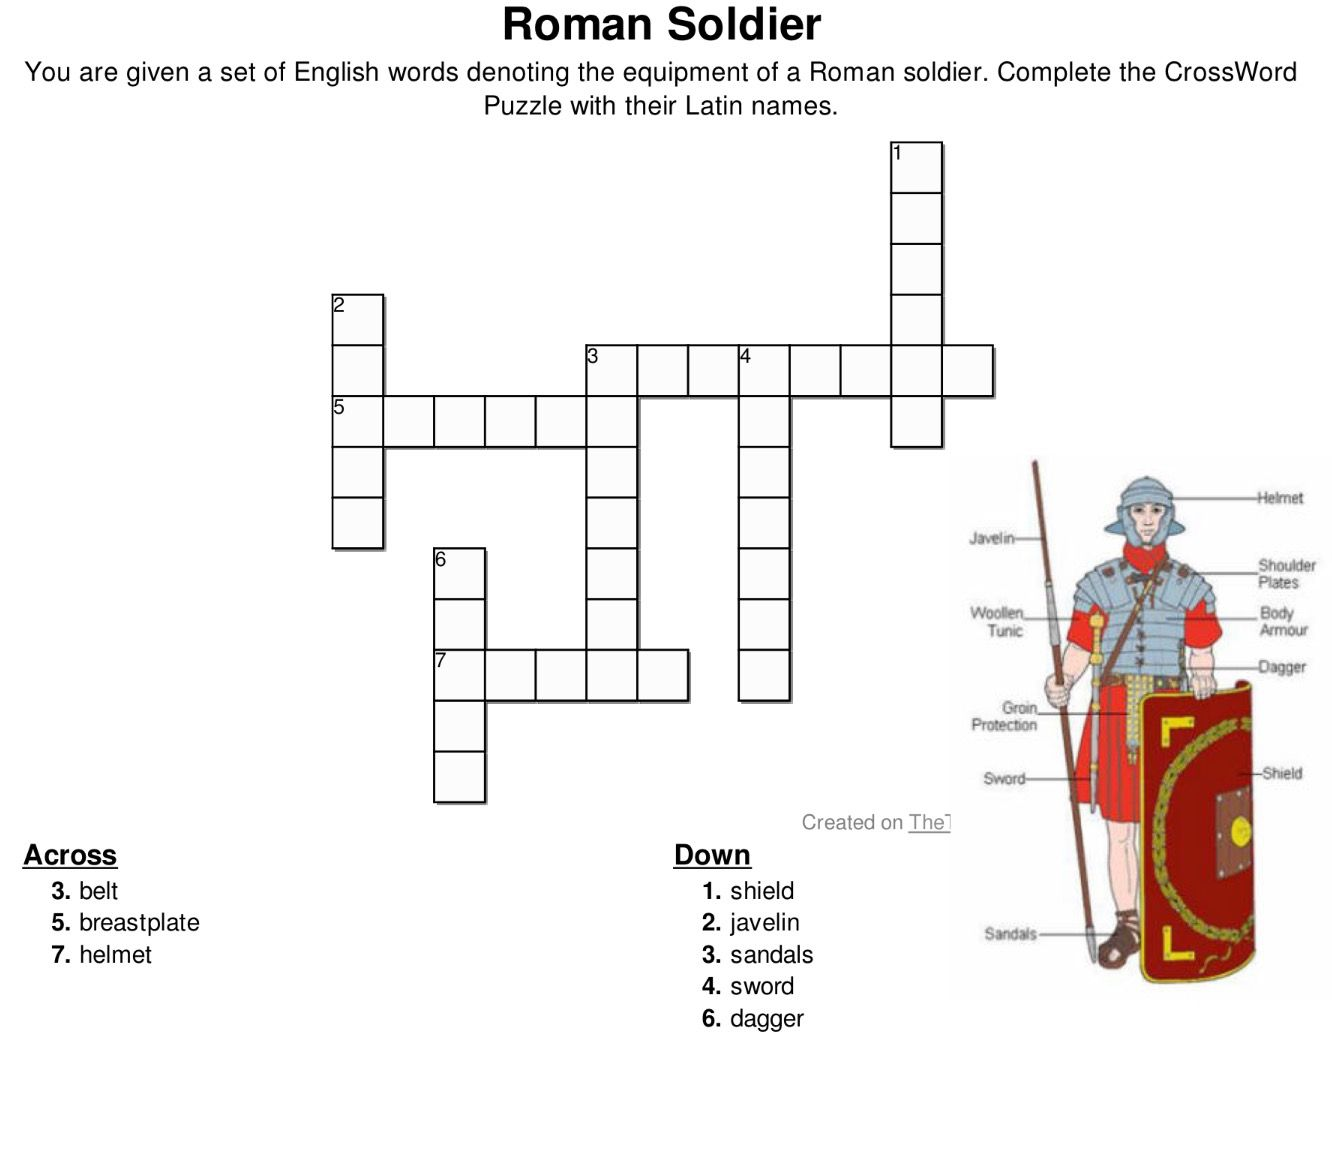 Pin by reks on learn latin pinterest worksheets latin language crossword puzzle latin names for equipment and armor of a roman soldier http m4hsunfo